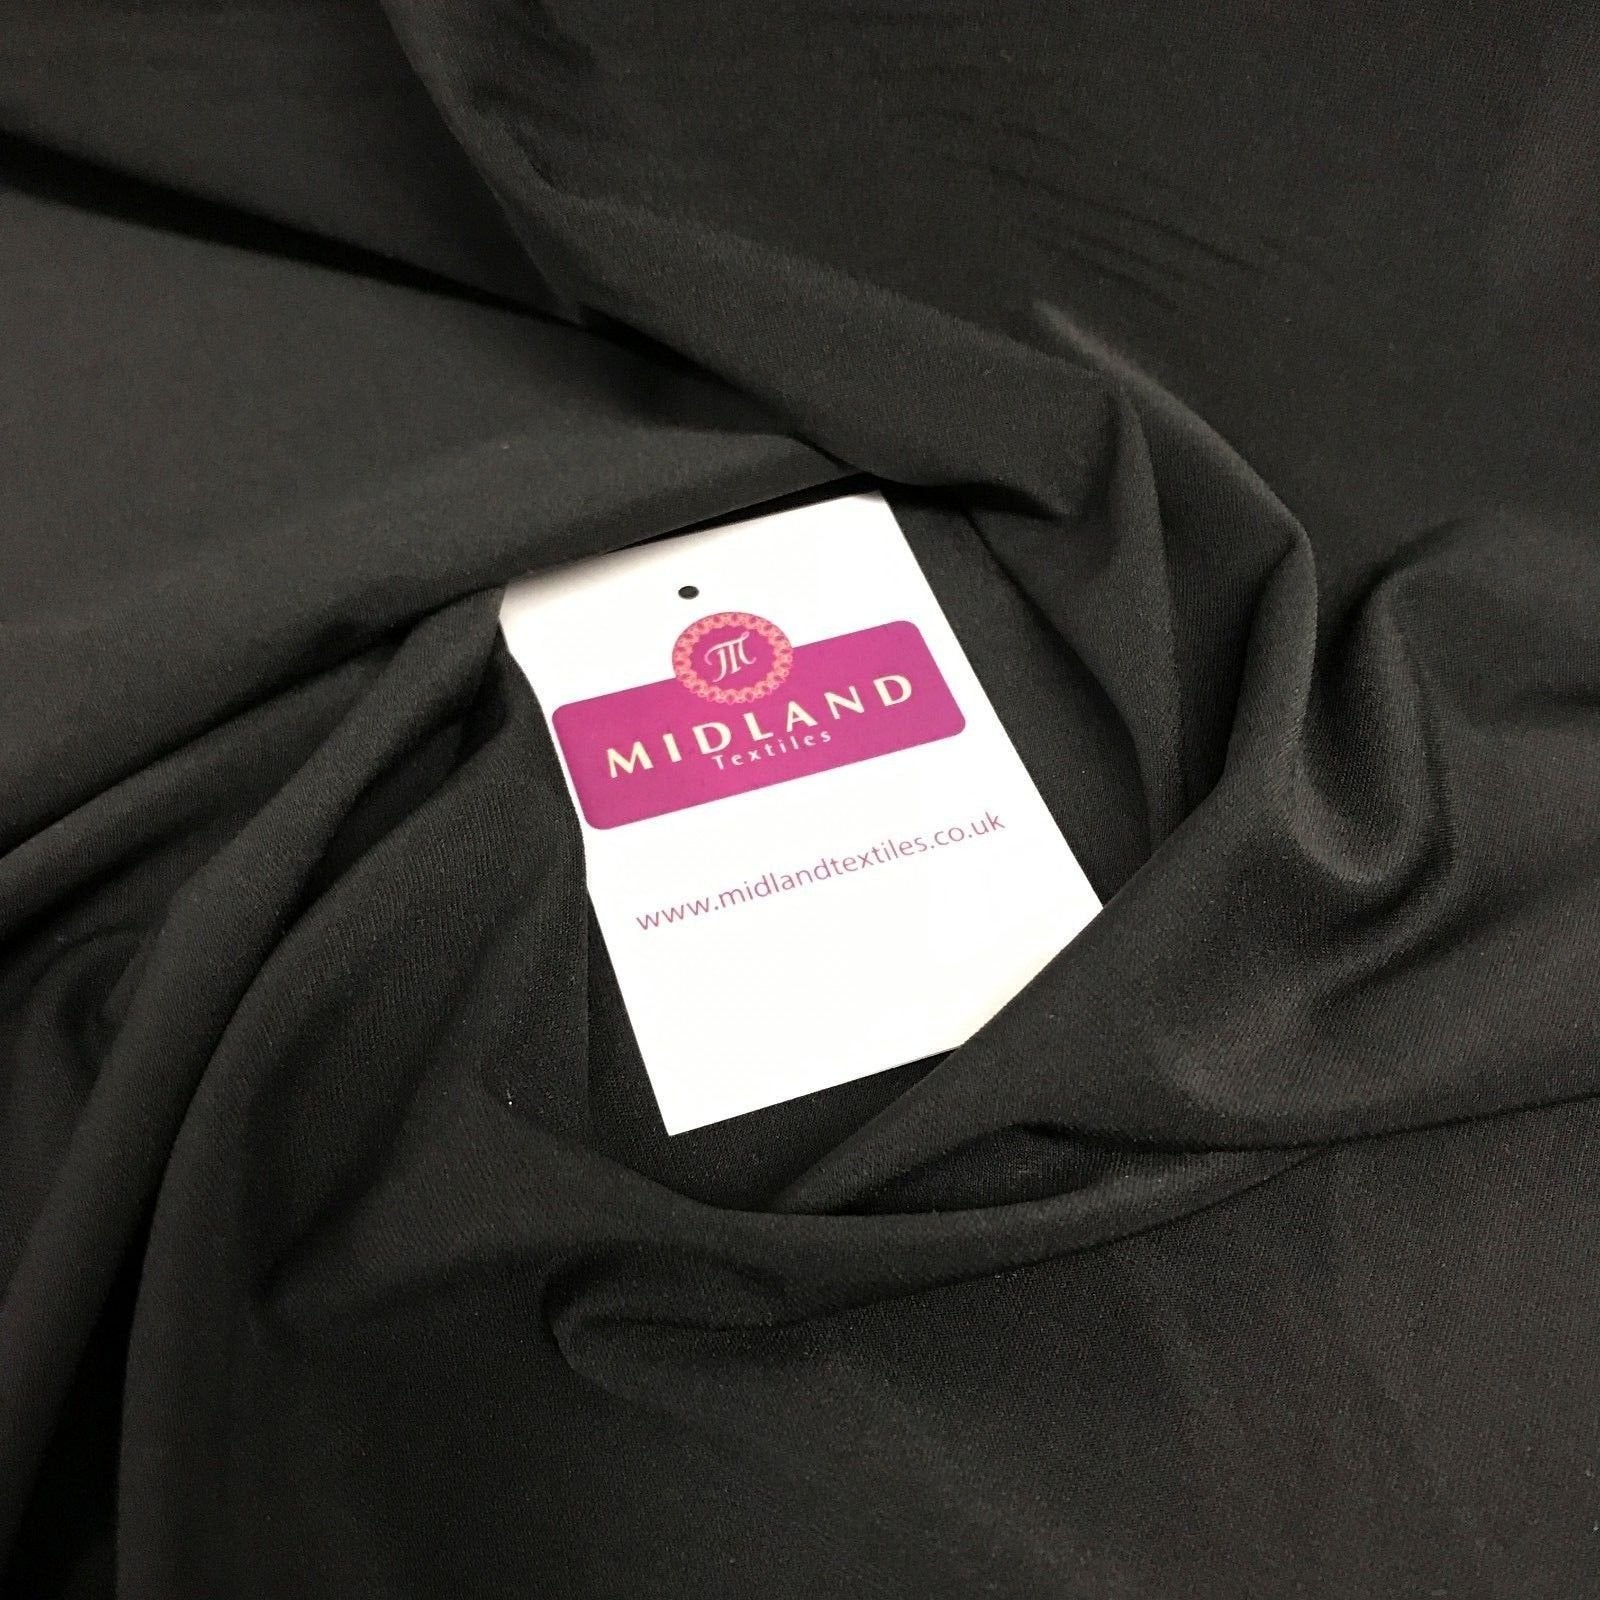 "Plain elastane stretch ity jersey dress fabric 58"" Wide M719 Mtex"